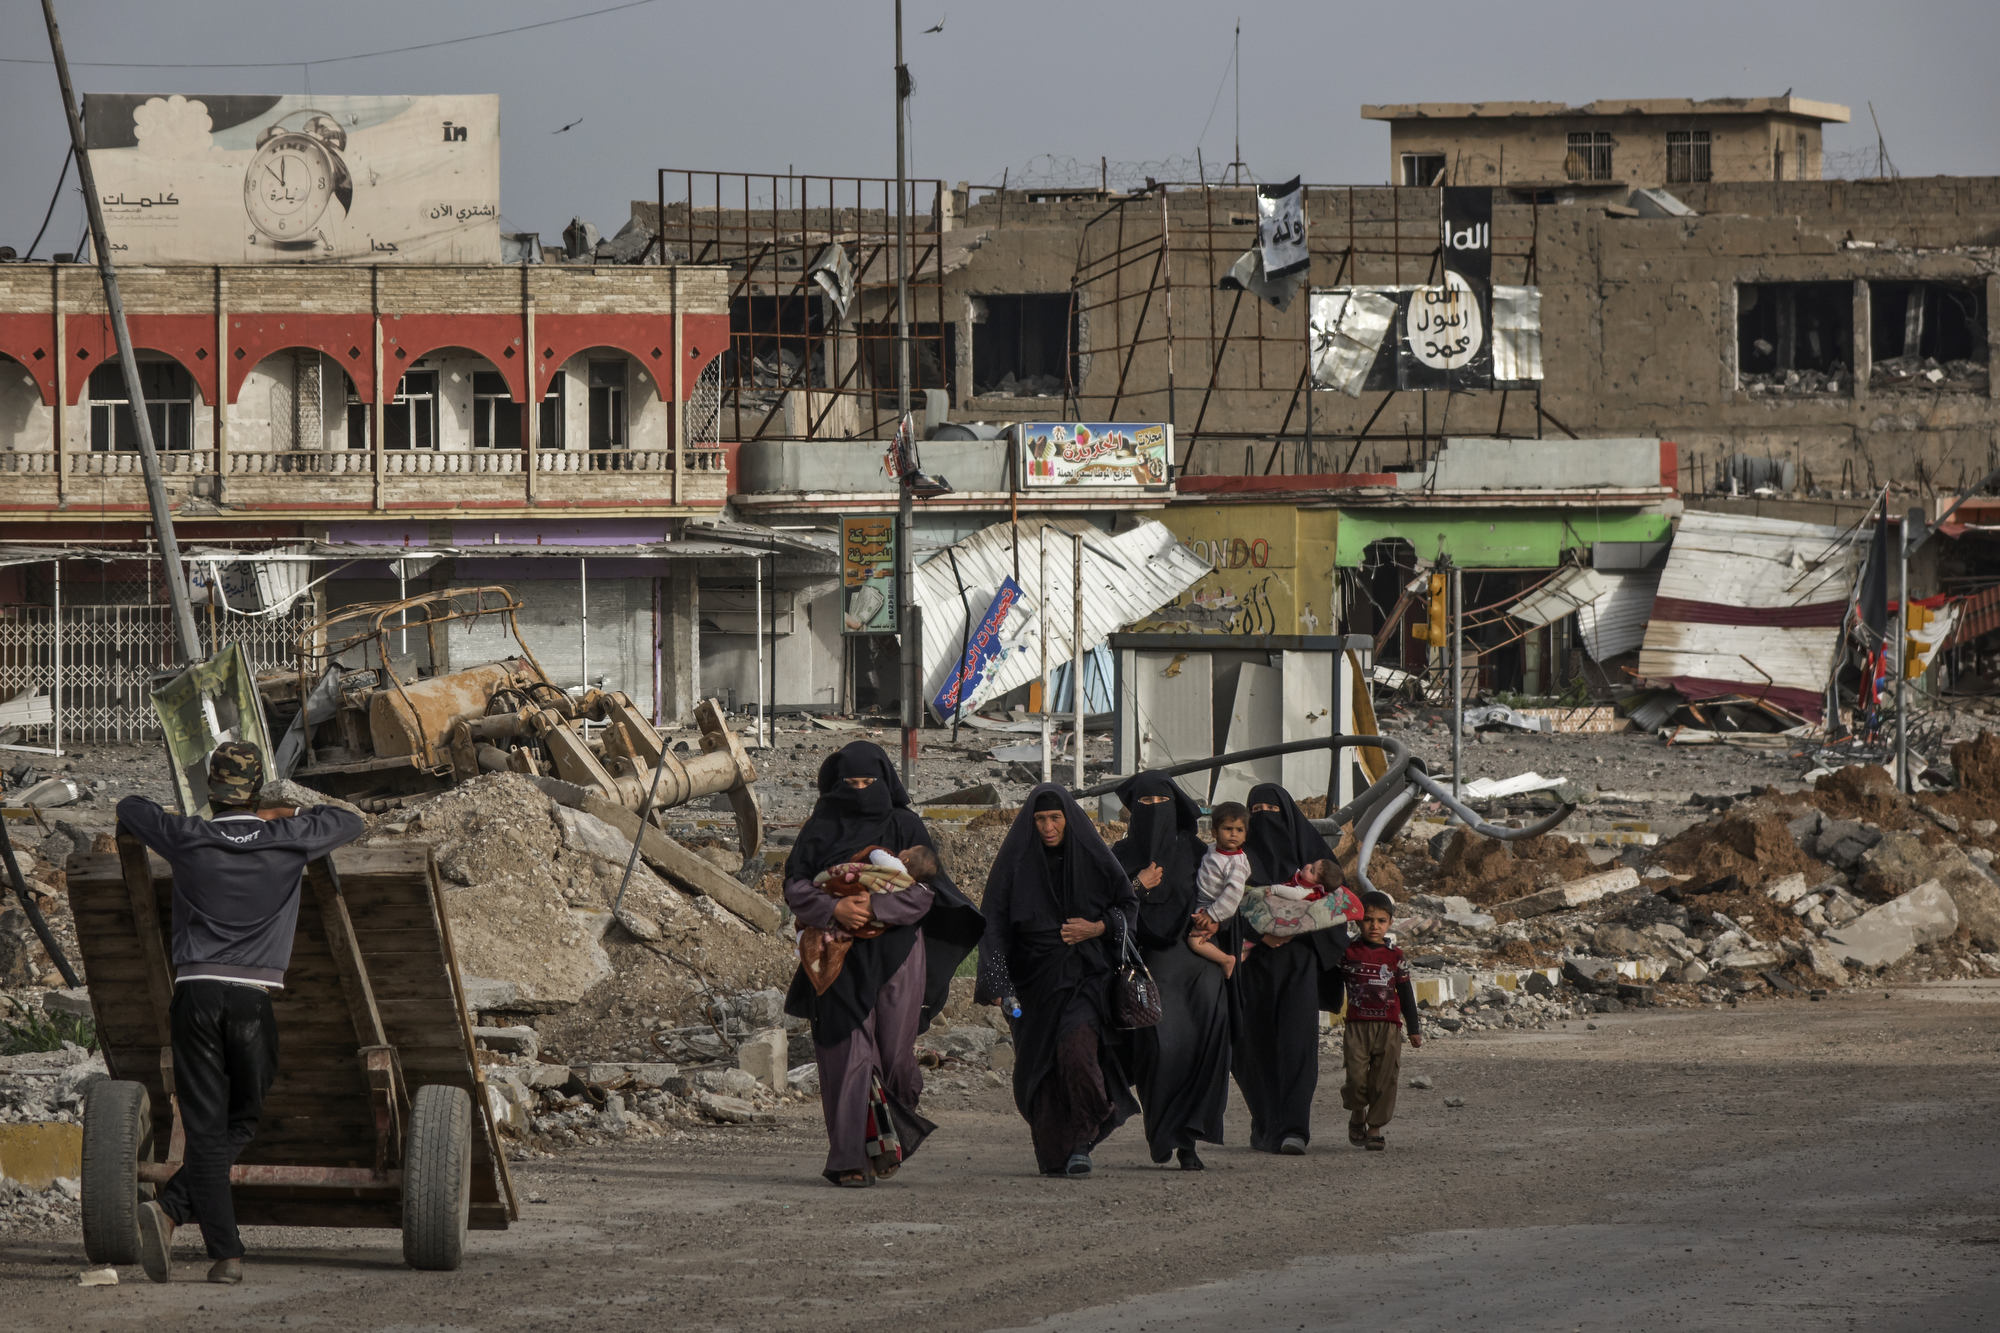 Civilians flee Mosul during the later stages of the battle.